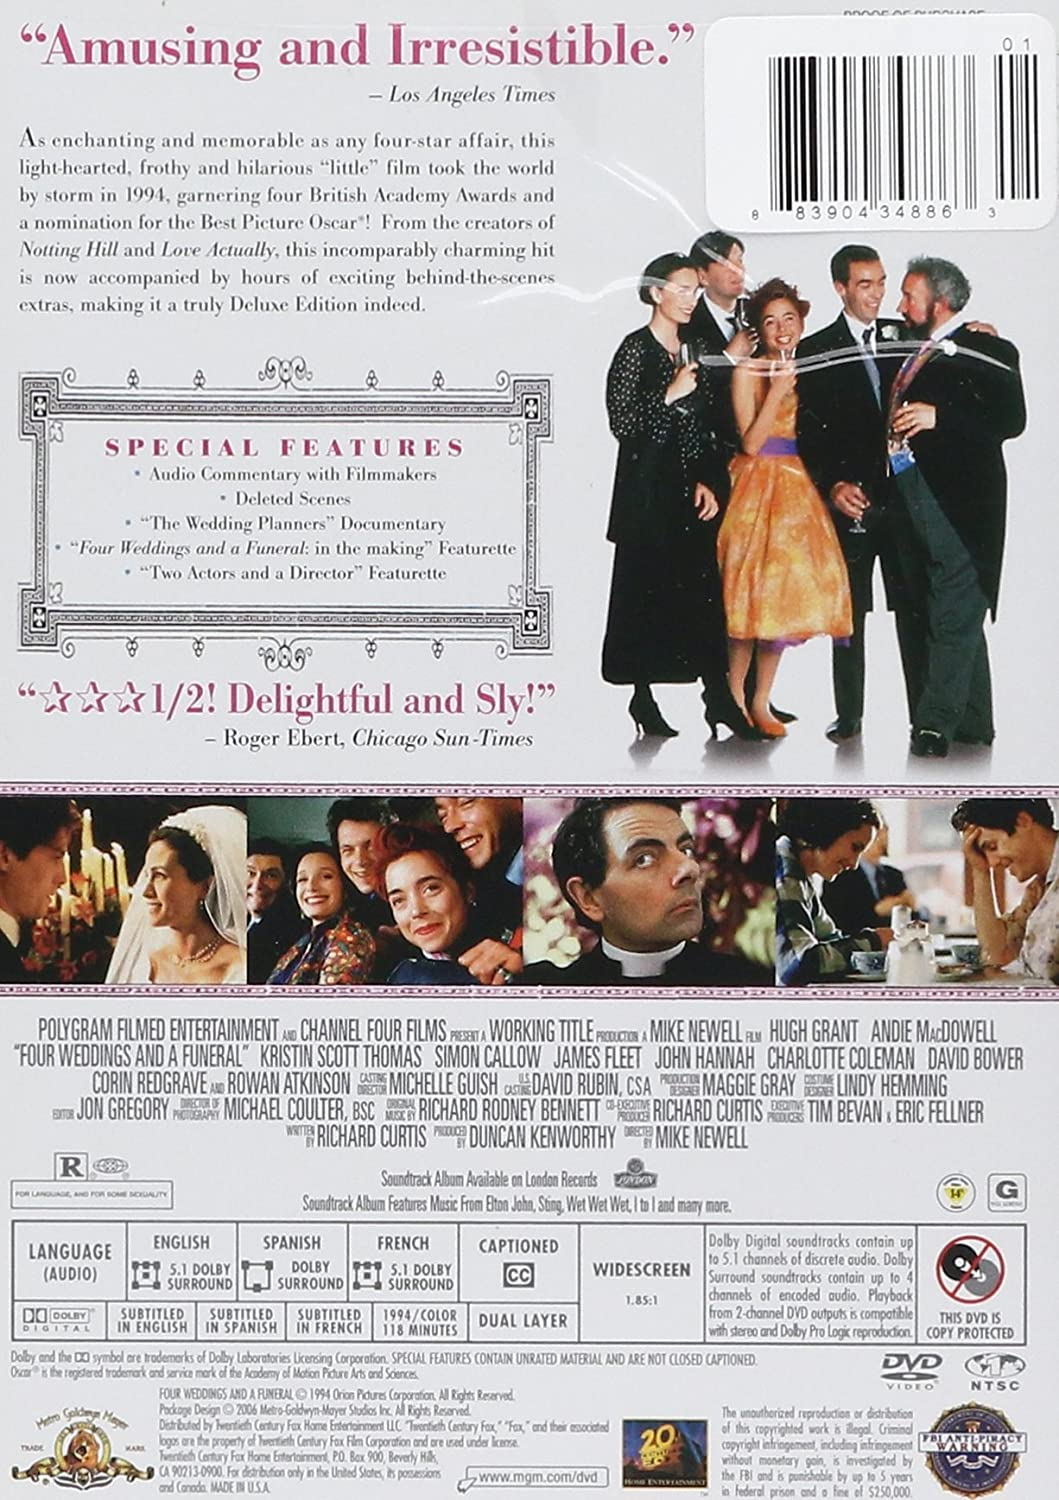 Amazon Four Weddings And A Funeral Deluxe Edition Hugh Grant Andie MacDowell James Fleet Simon Callow John Hannah Kristin Scott Thomas